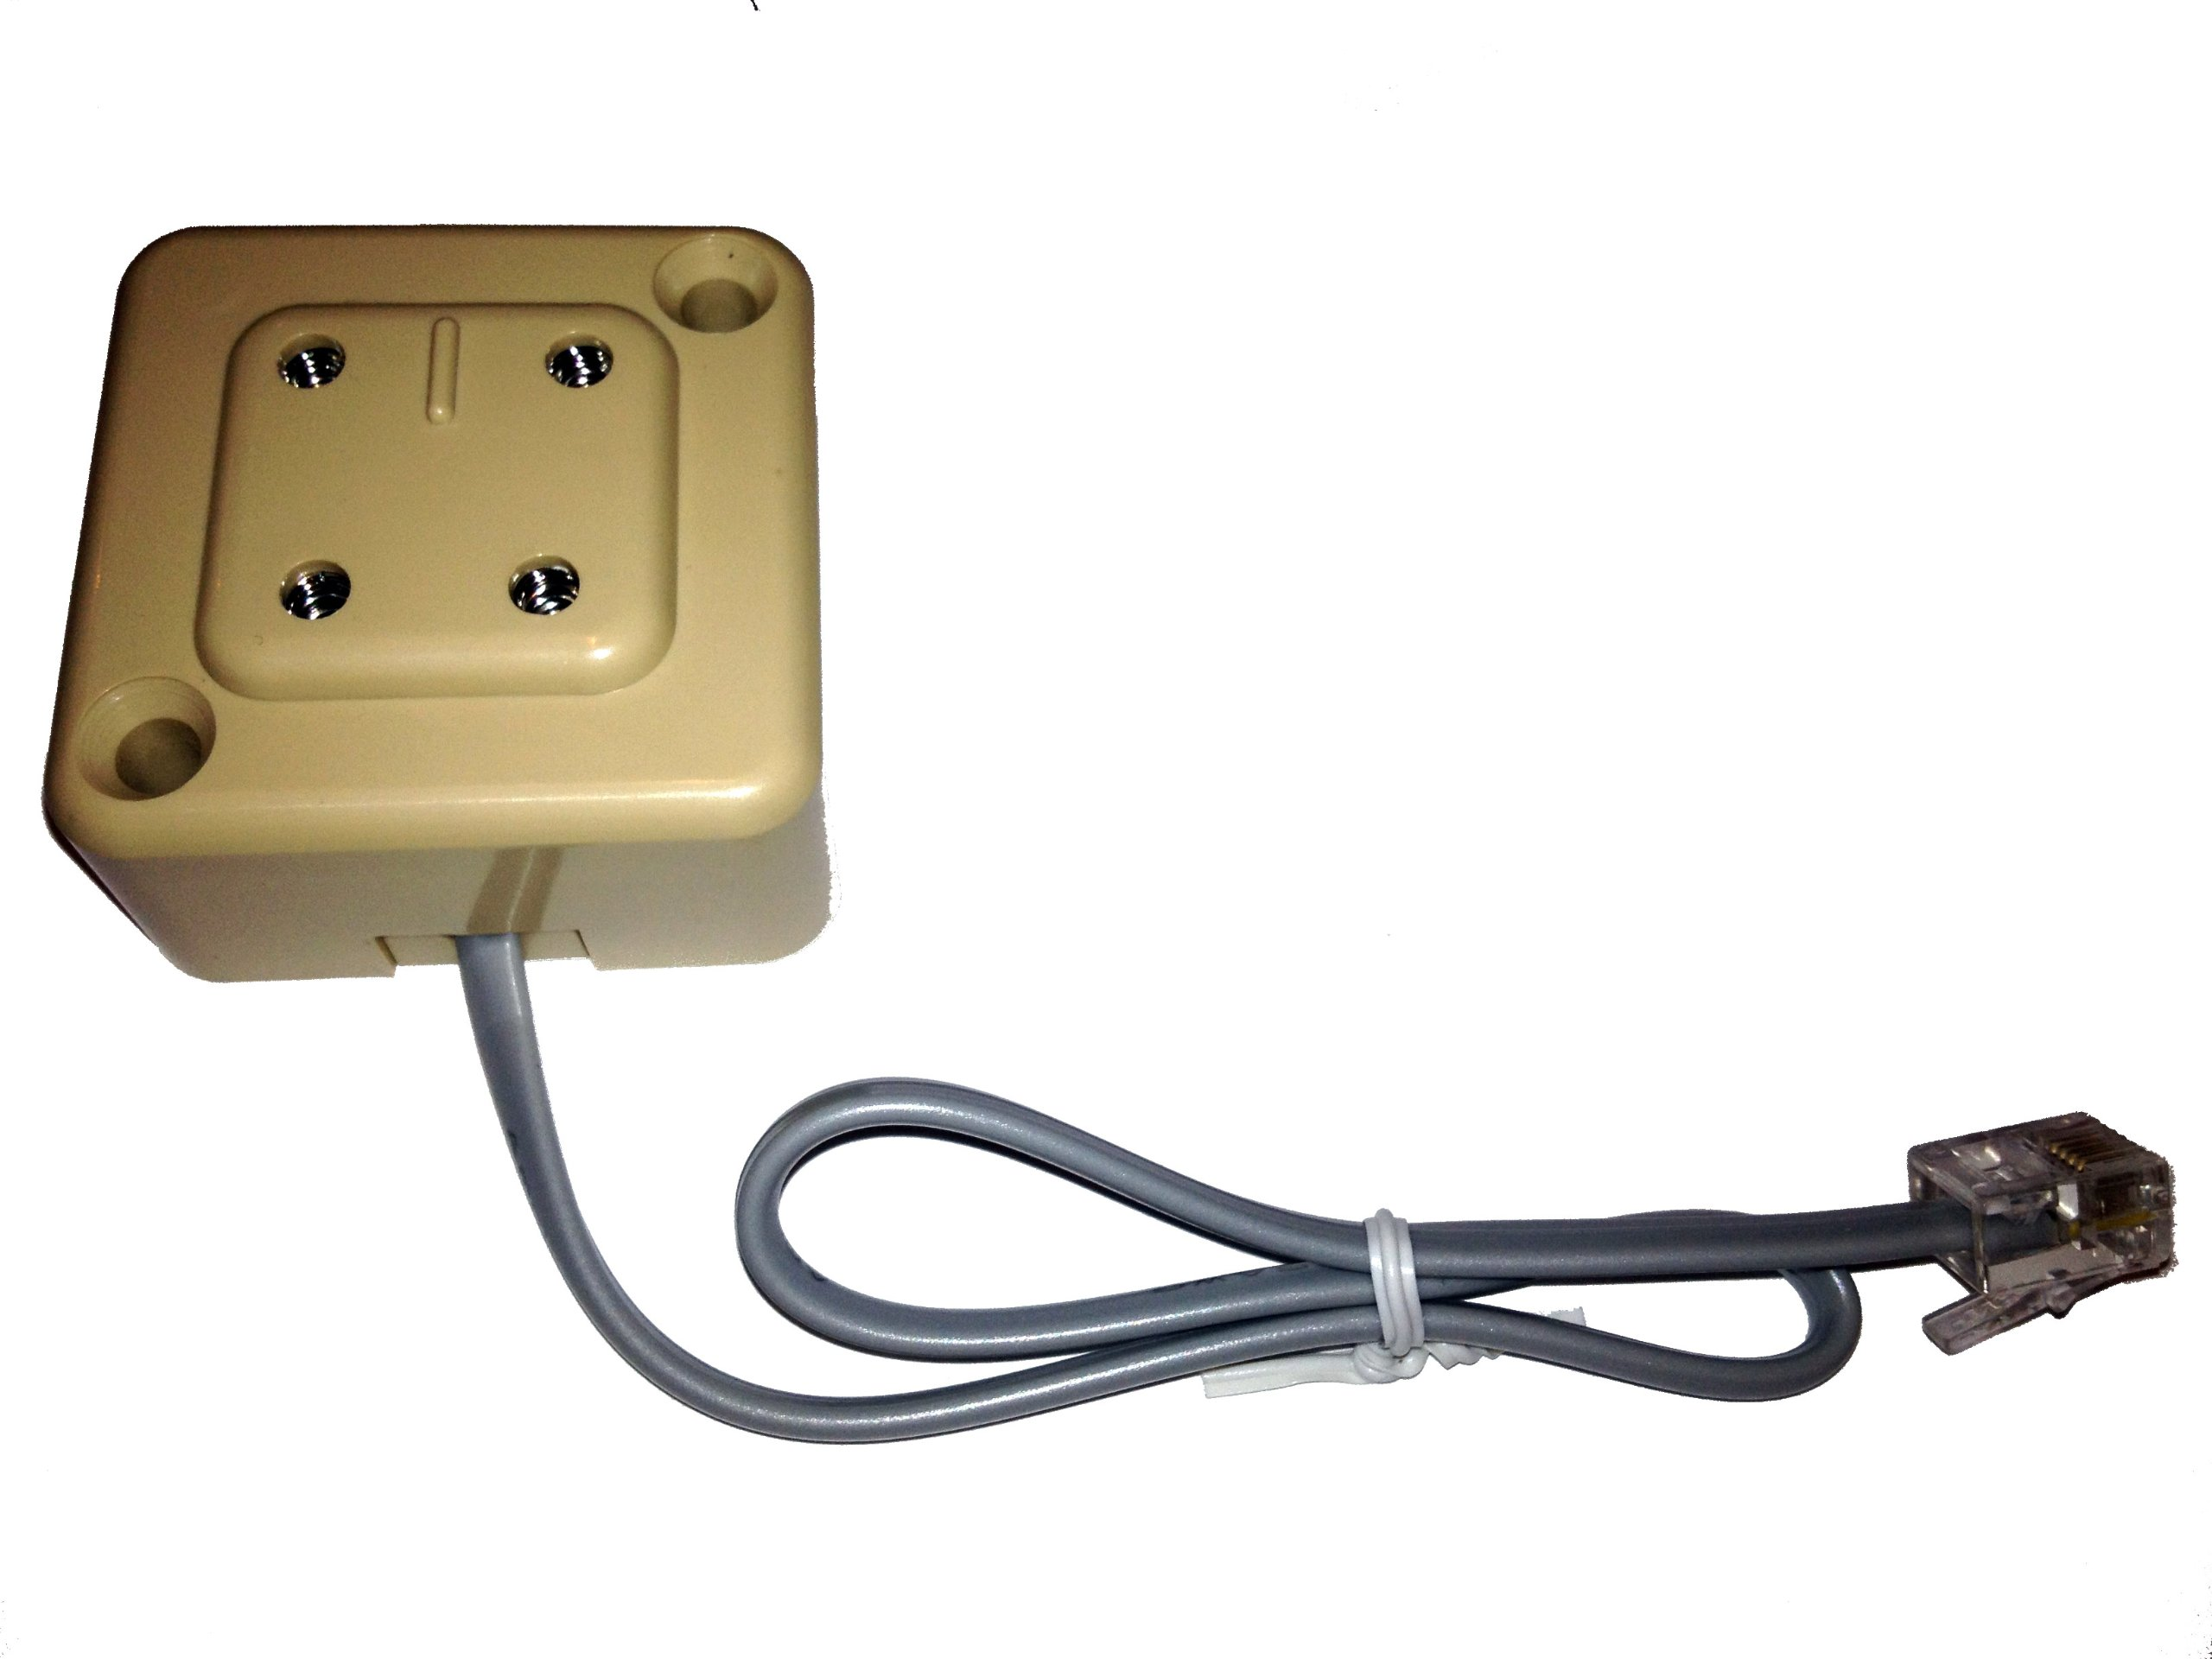 Telephone 4 prong plug to modular adapter RJ-11 Four Prong for Vintage Rotary by SVS LLP